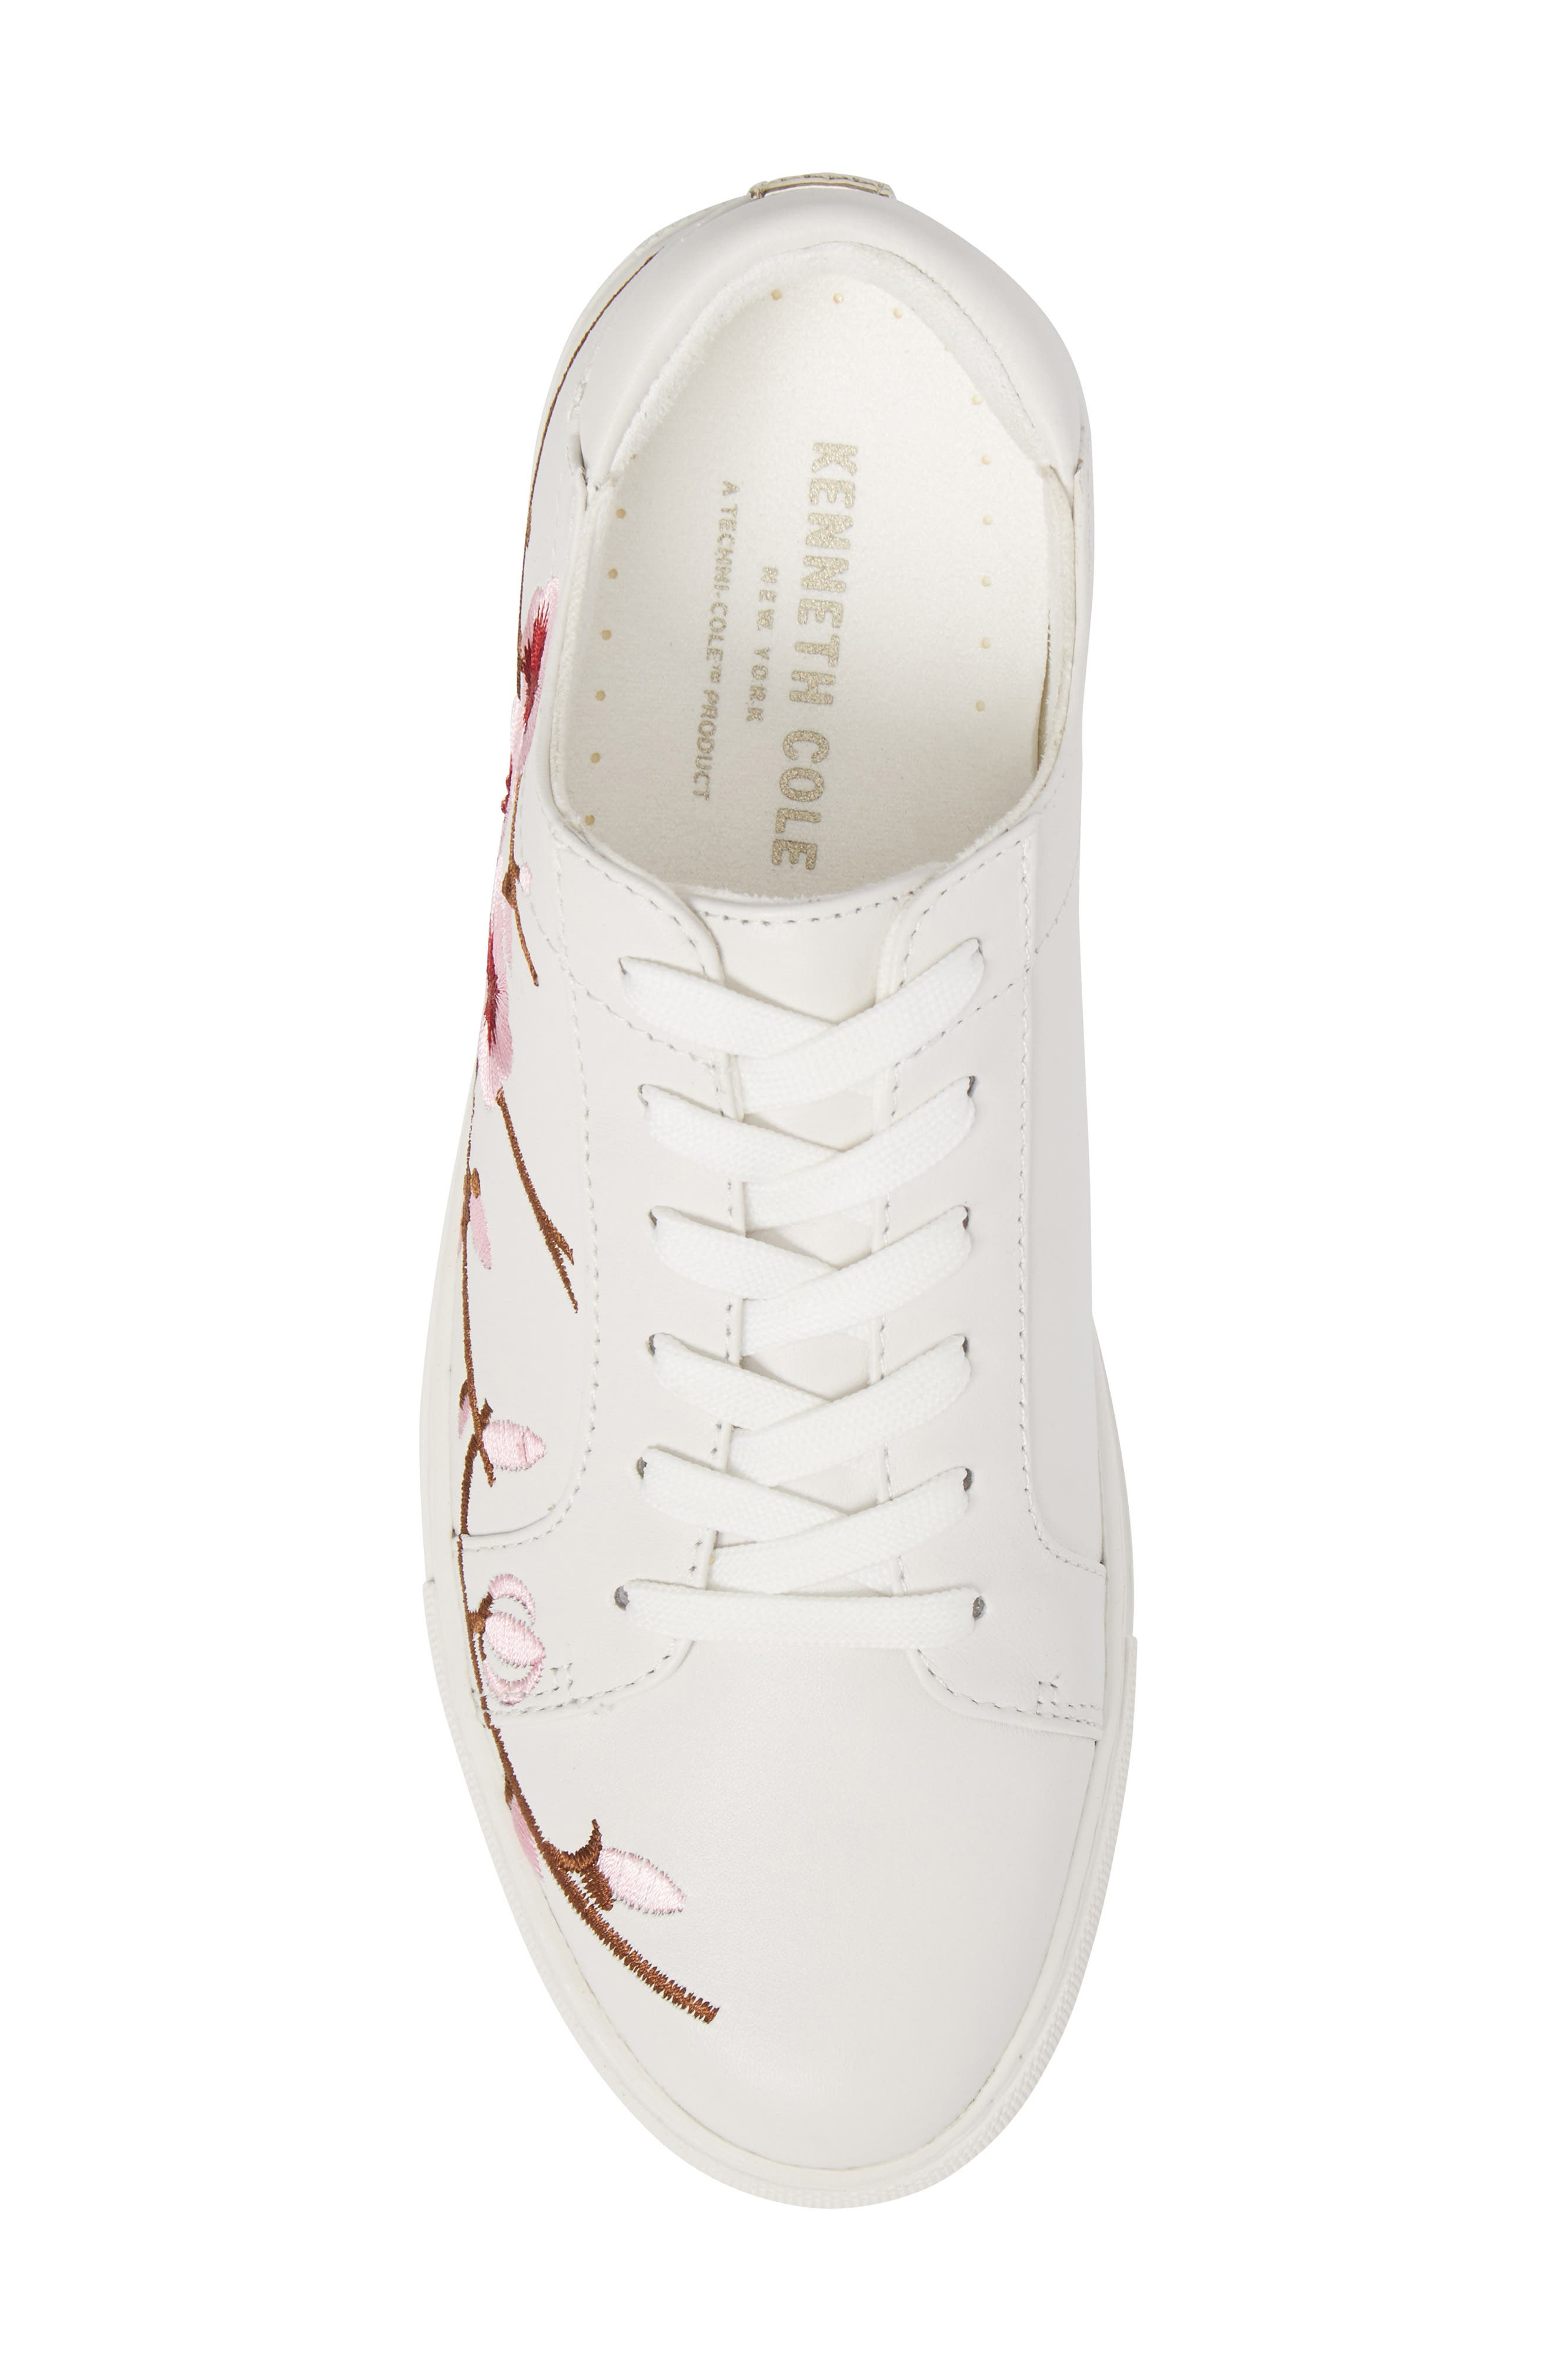 Kam Blossom Embroidered Sneaker,                             Alternate thumbnail 5, color,                             White Leather